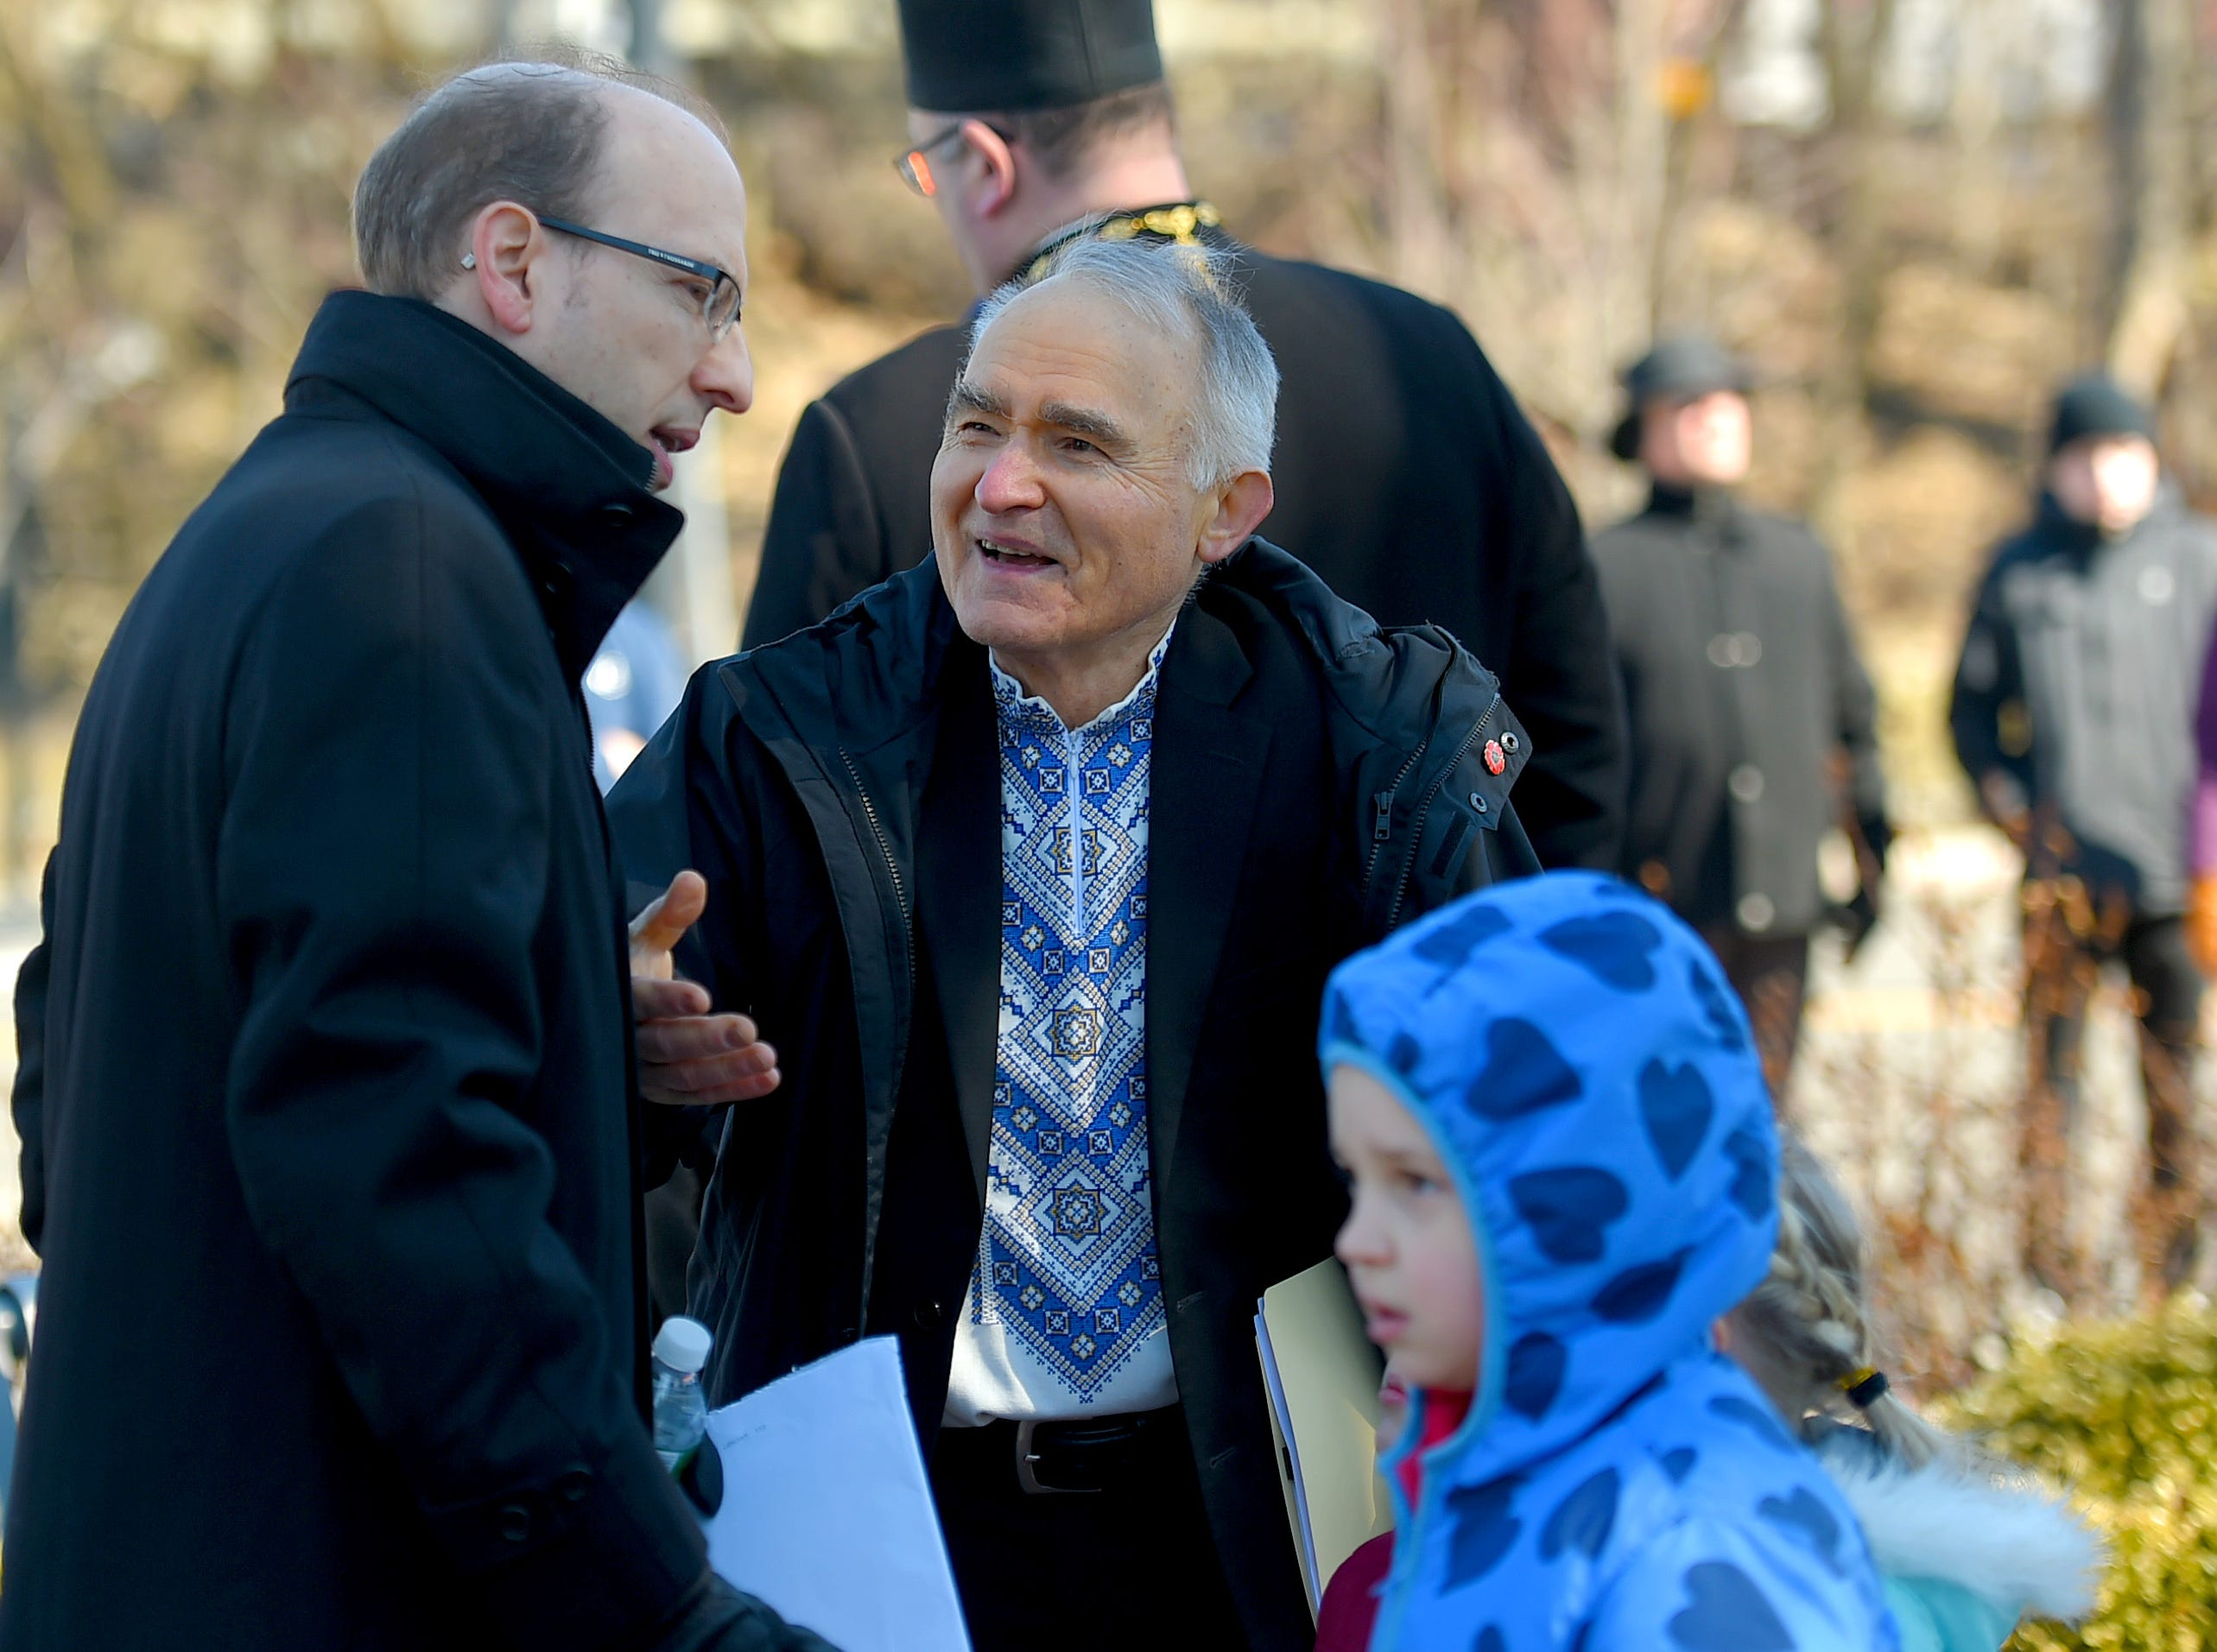 Dr. Jeffrey King speaks with Lubomyr Zobniw before the morning gathering to honor 13 victims of the 2009 mass shooting at the American Civic Association in Binghamton. King's mother, Roberta King, and Zobniw's wife, Maria Zobniw, were among those killed in the tragedy.  April 3, 2019.